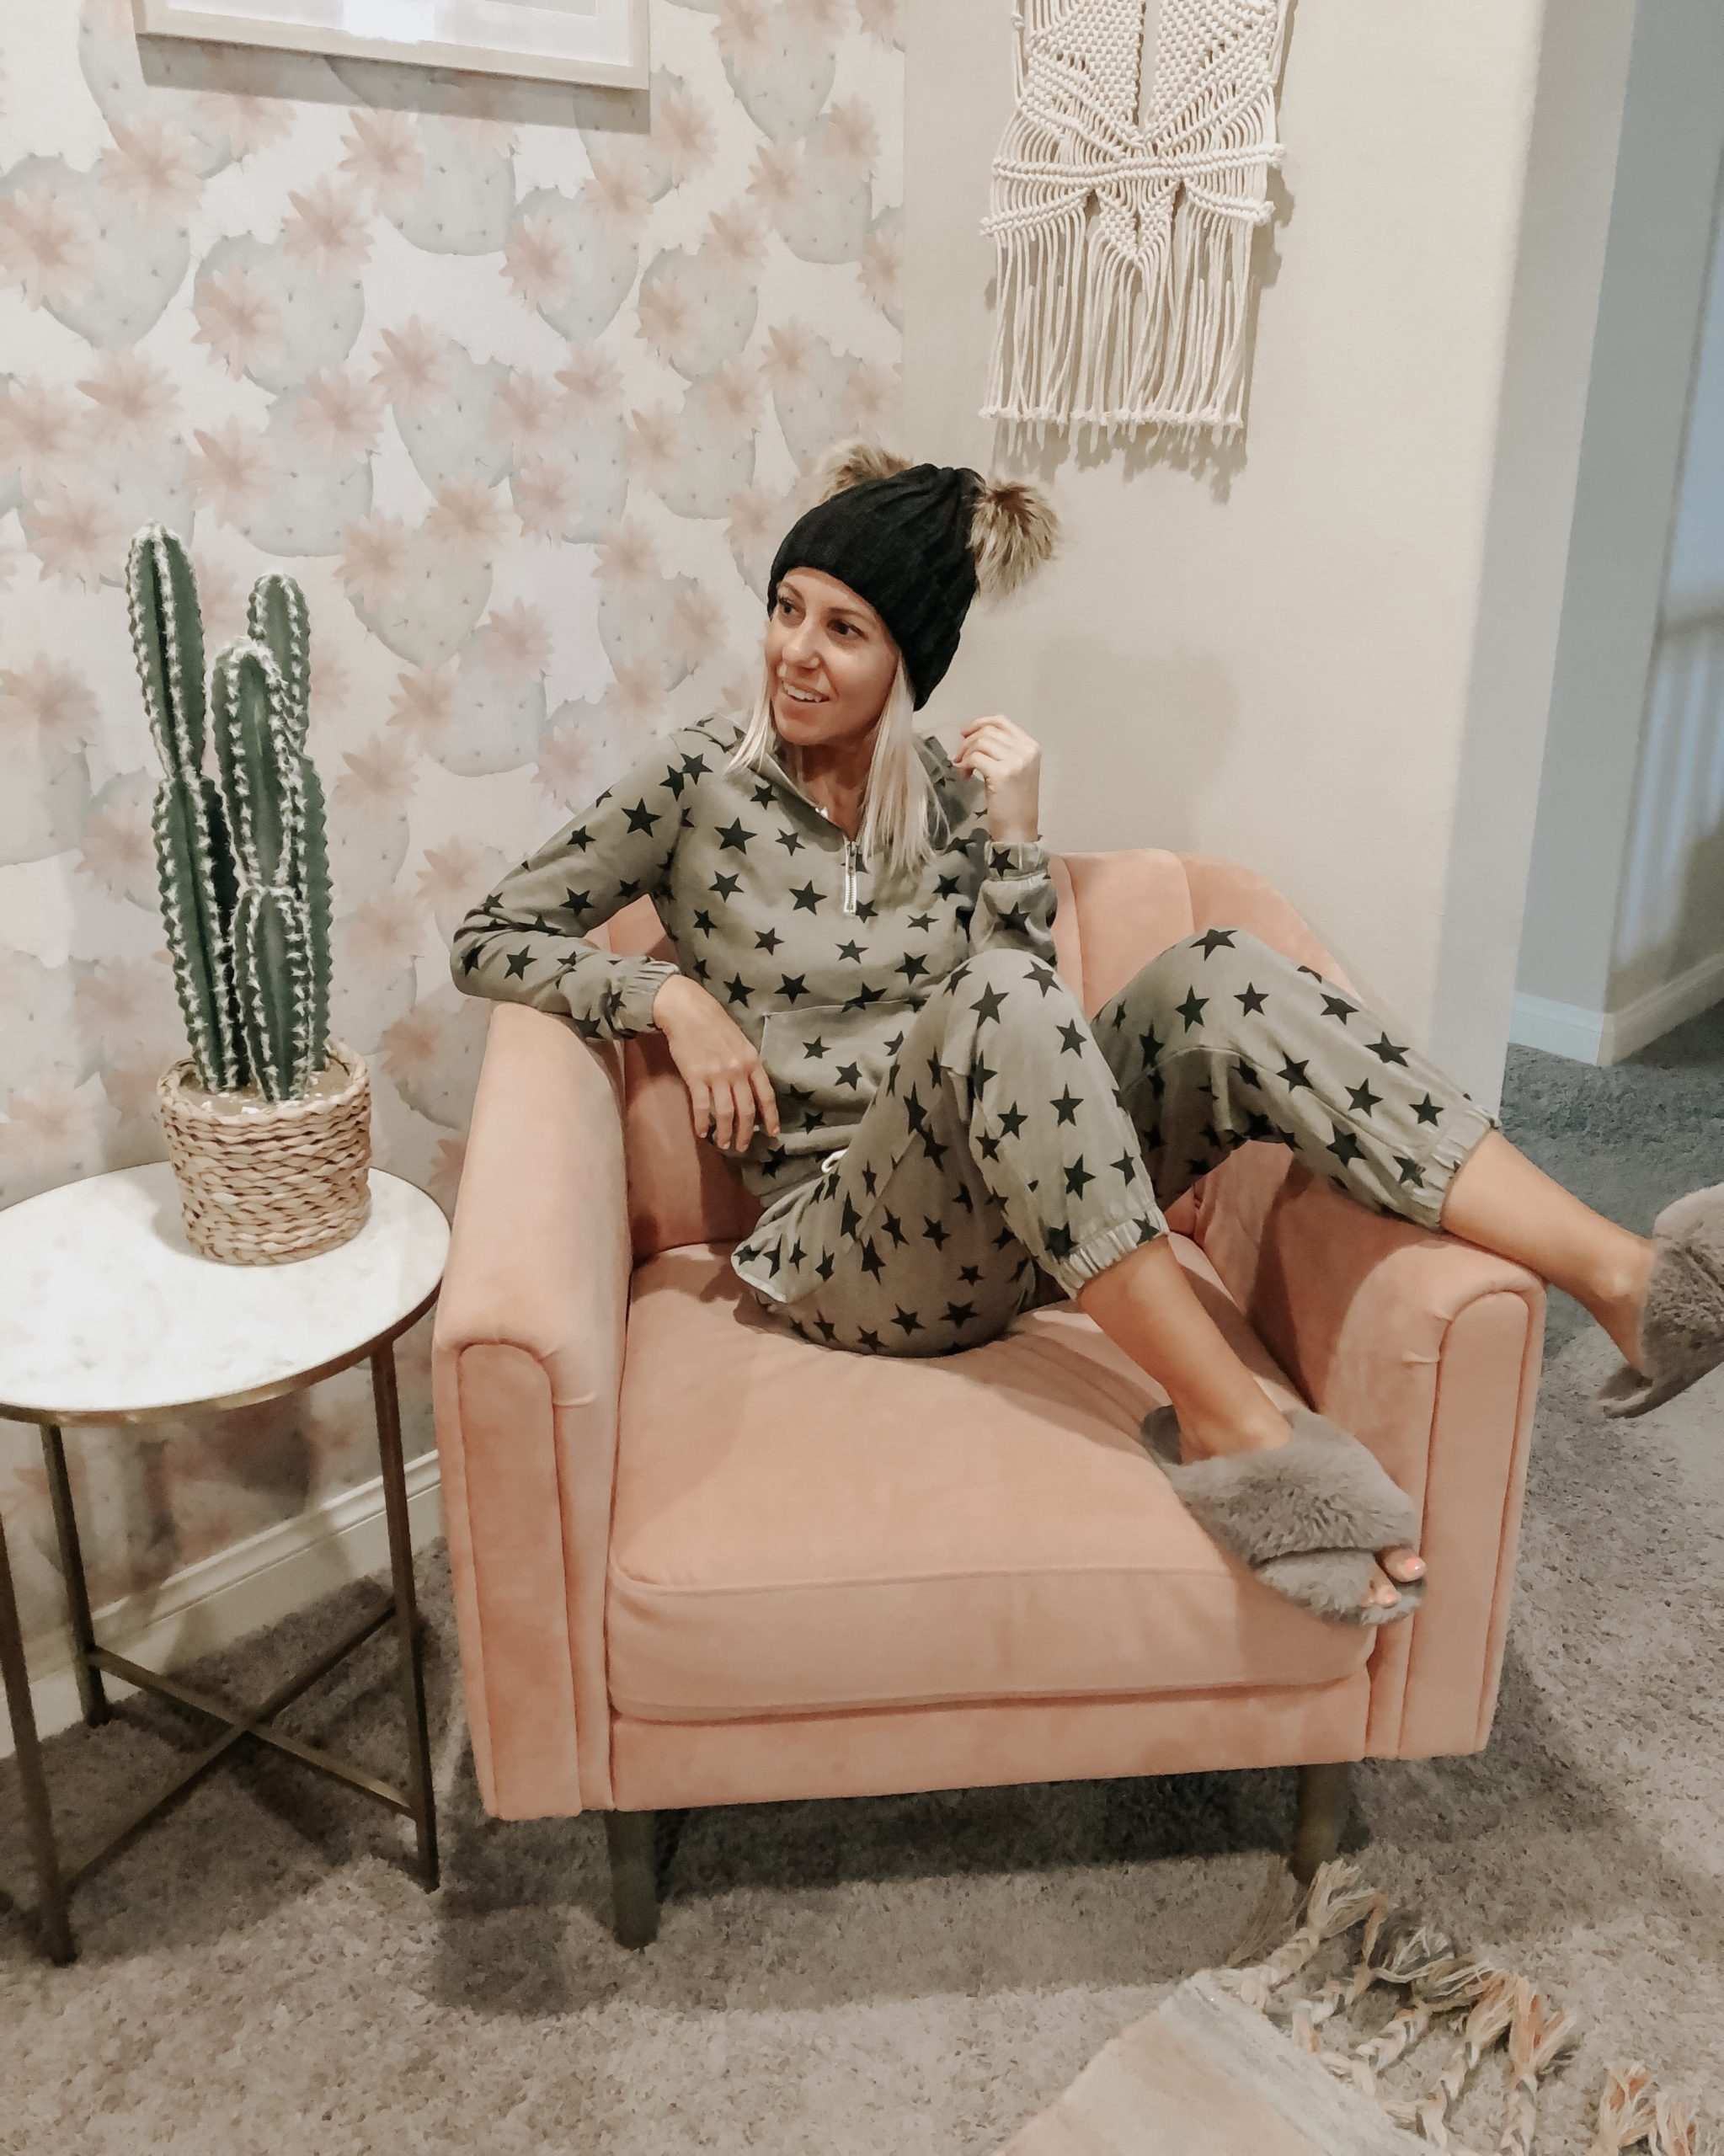 LIVING IN COZY MATCHING SETS + SHARING THE BEST COZY GIFTS- Jaclyn De Leon Style- Looking for the perfect gift? I've got you covered with everything from beanies, slippers, fleece and cozy sherpa.